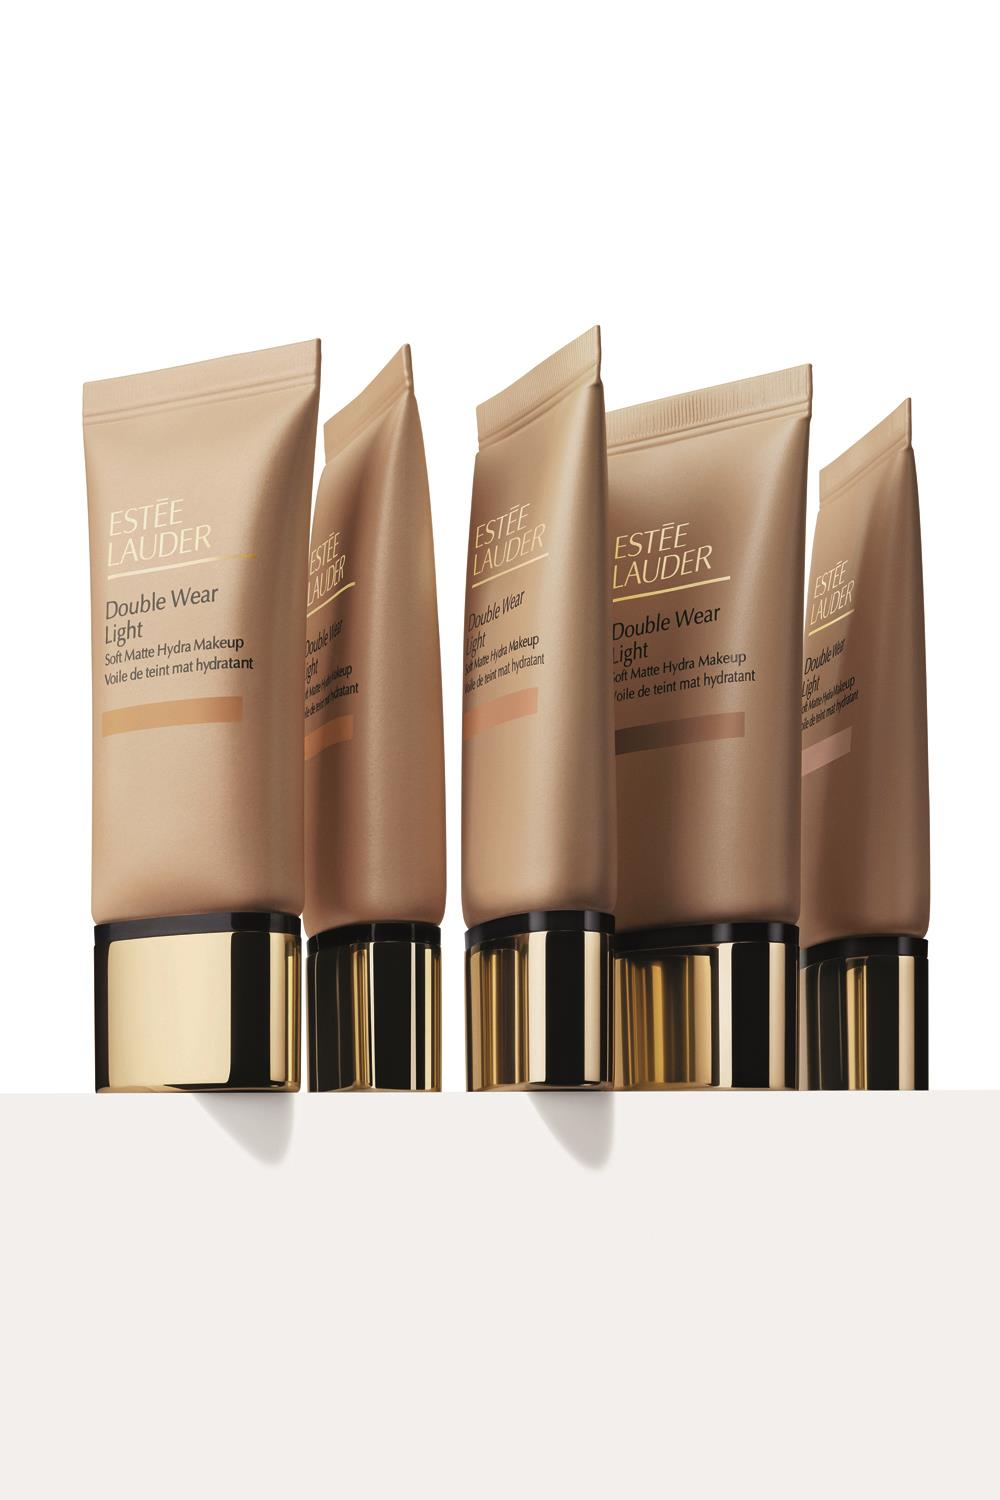 tendencias maquillaje otoño Estee lauder Double Wear Light Soft Matte Hydra Makeup. Piel dorada: rostro